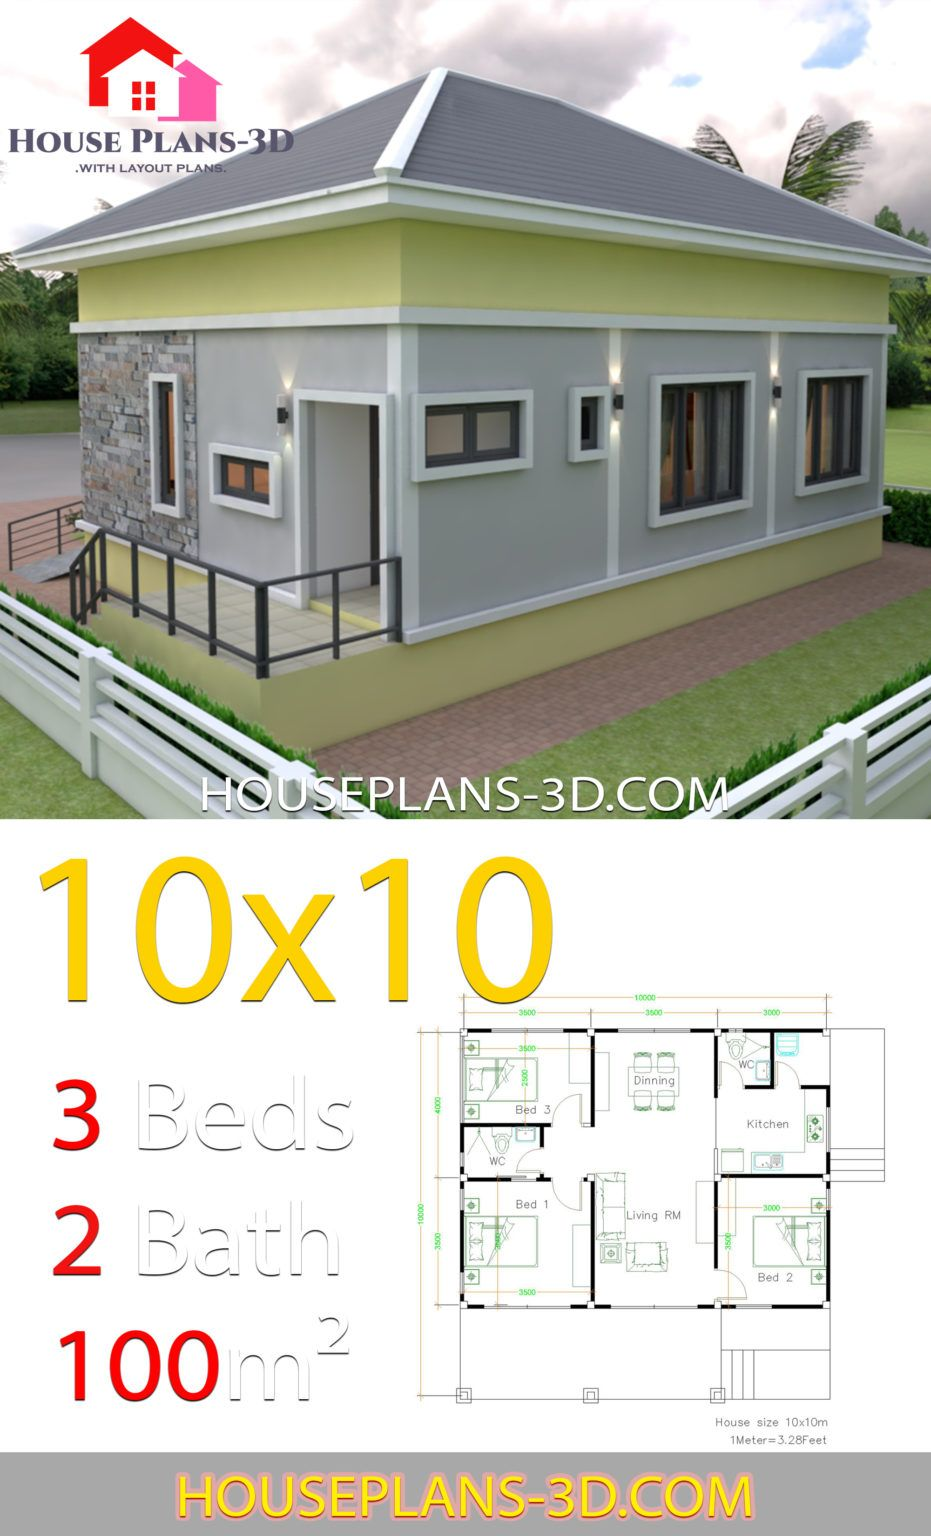 10x10 Room Layout: House Design 10x10 With 3 Bedrooms Hip Roof